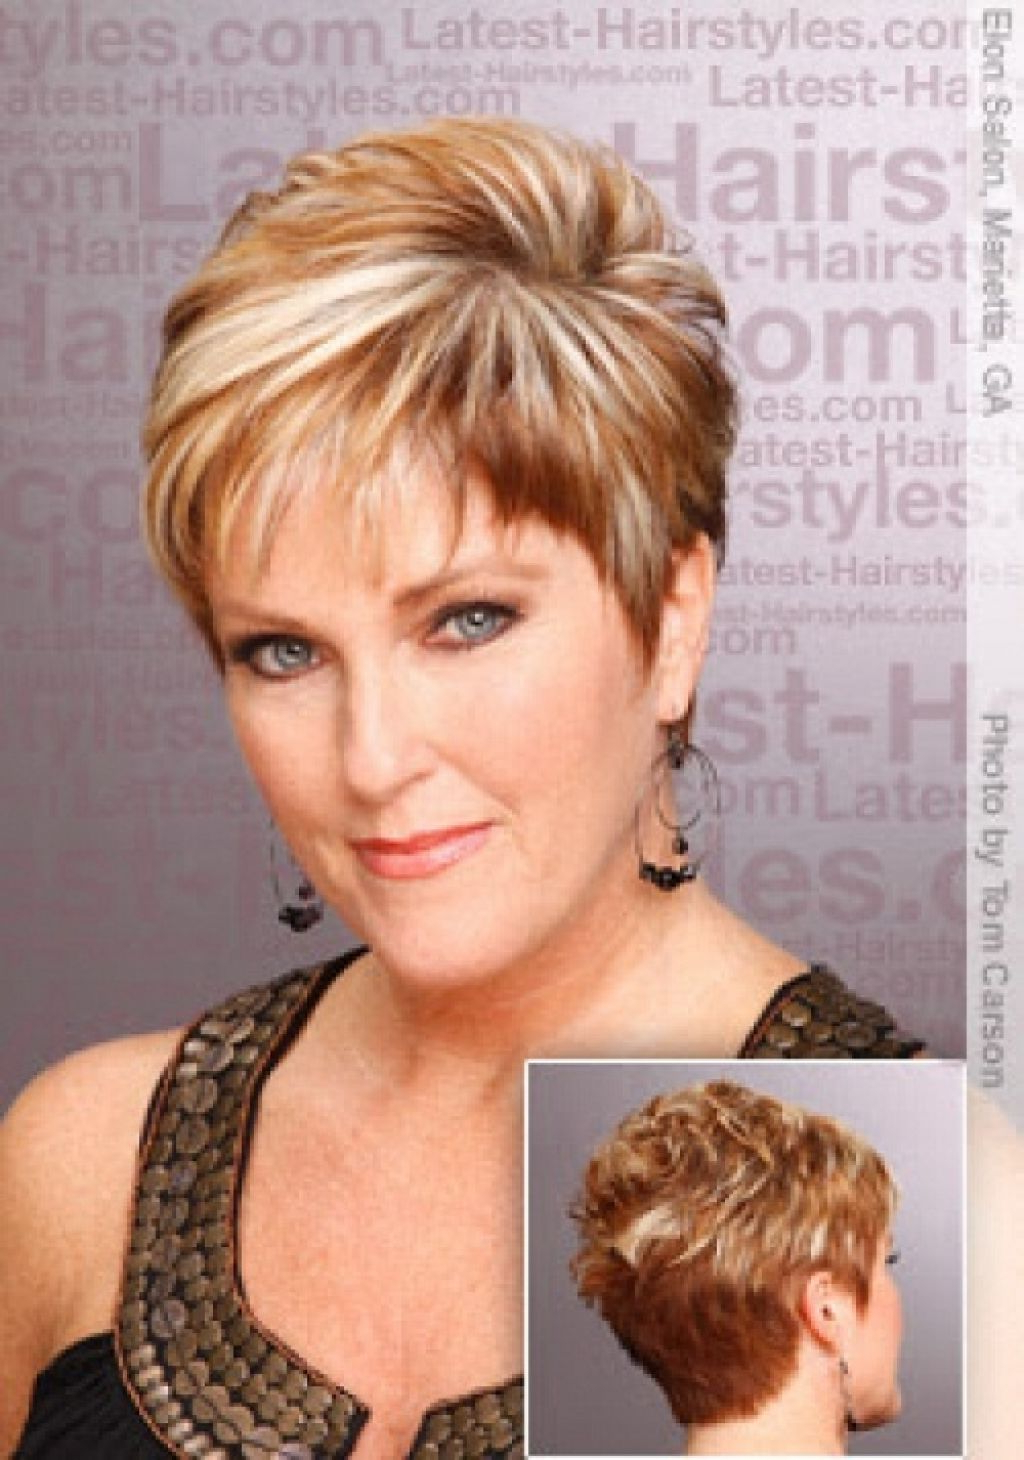 Short Hairstyles 40 Year Old Woman – Hairstyle For Women & Man Pertaining To Short Hairstyles For 60 Year Olds (View 5 of 25)